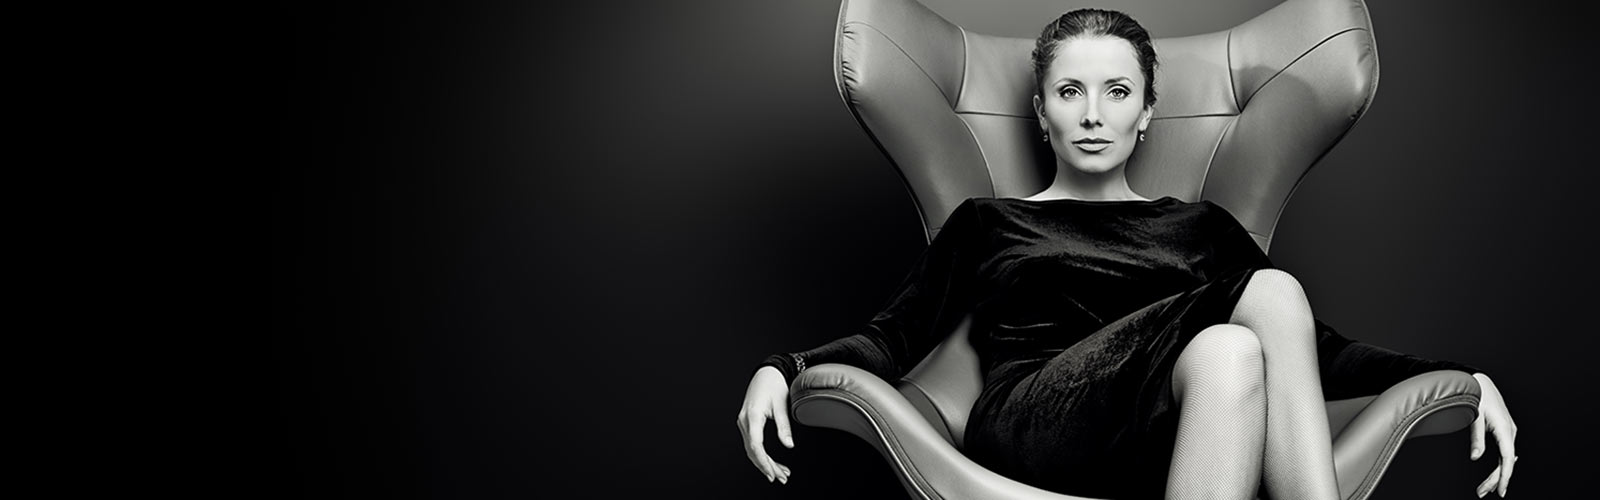 luxury-bW-boss-woman-on-chair-1600x500